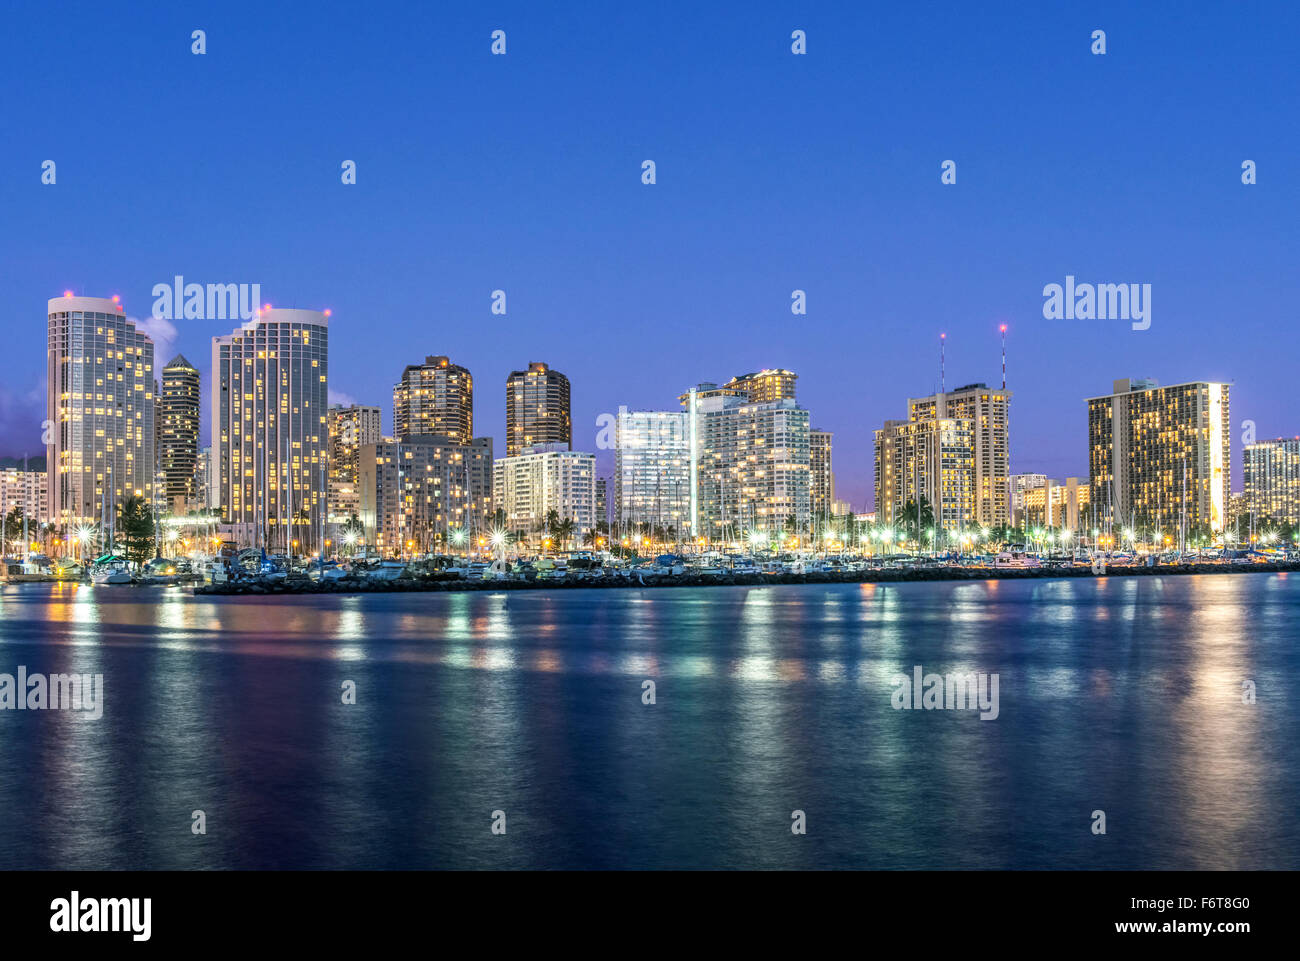 Honolulu city skyline reflet dans l'océan, Virginia, United States Photo Stock